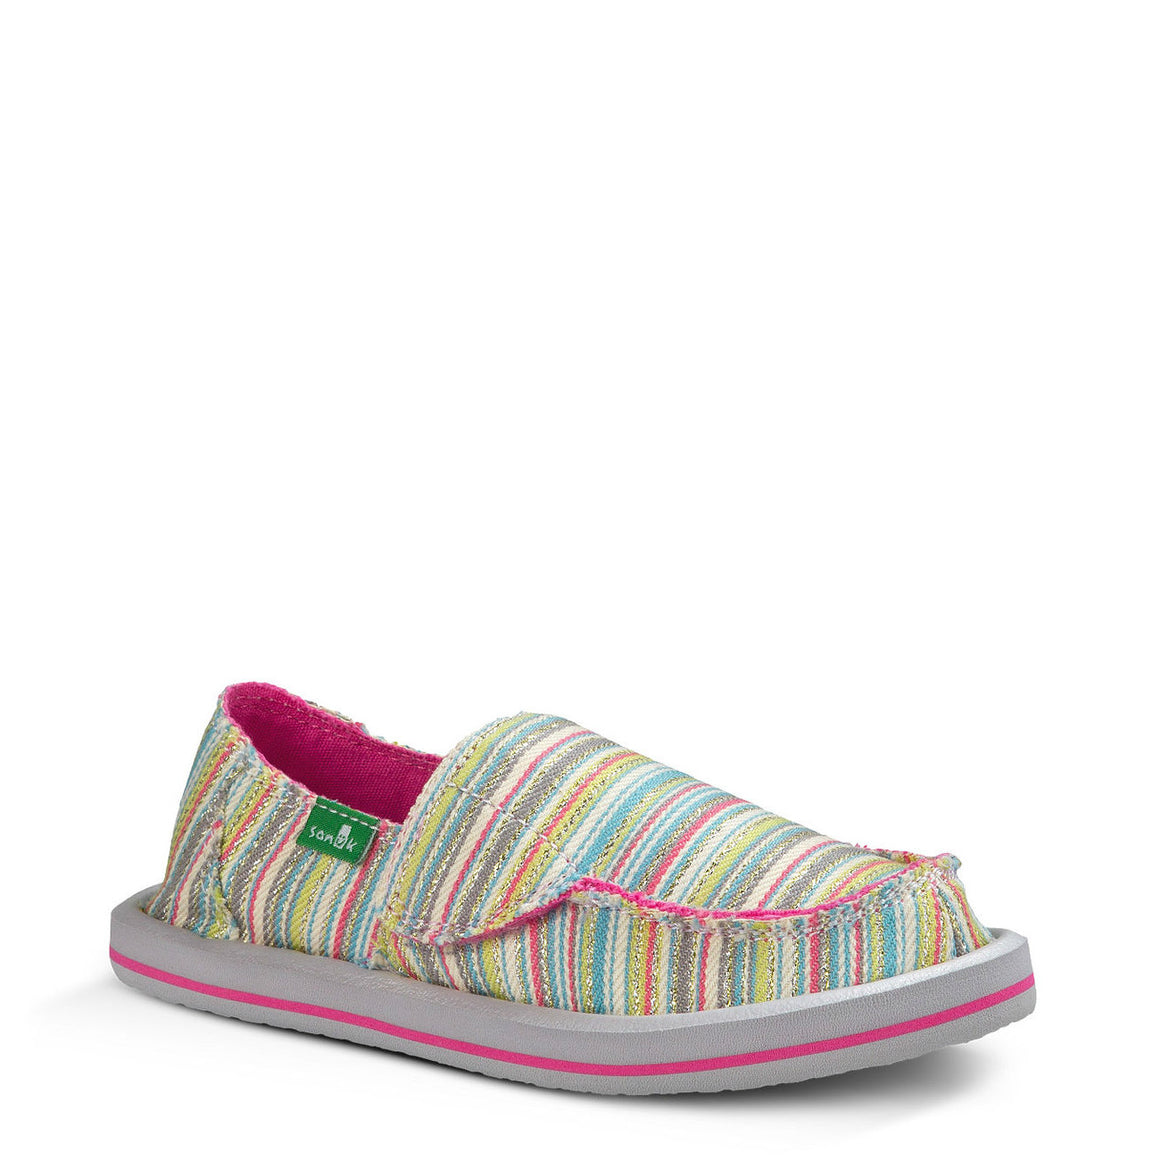 Sanuk Toddler's Donna - Aqua/Pink Stripes SGF1055T - ShoeShackOnline